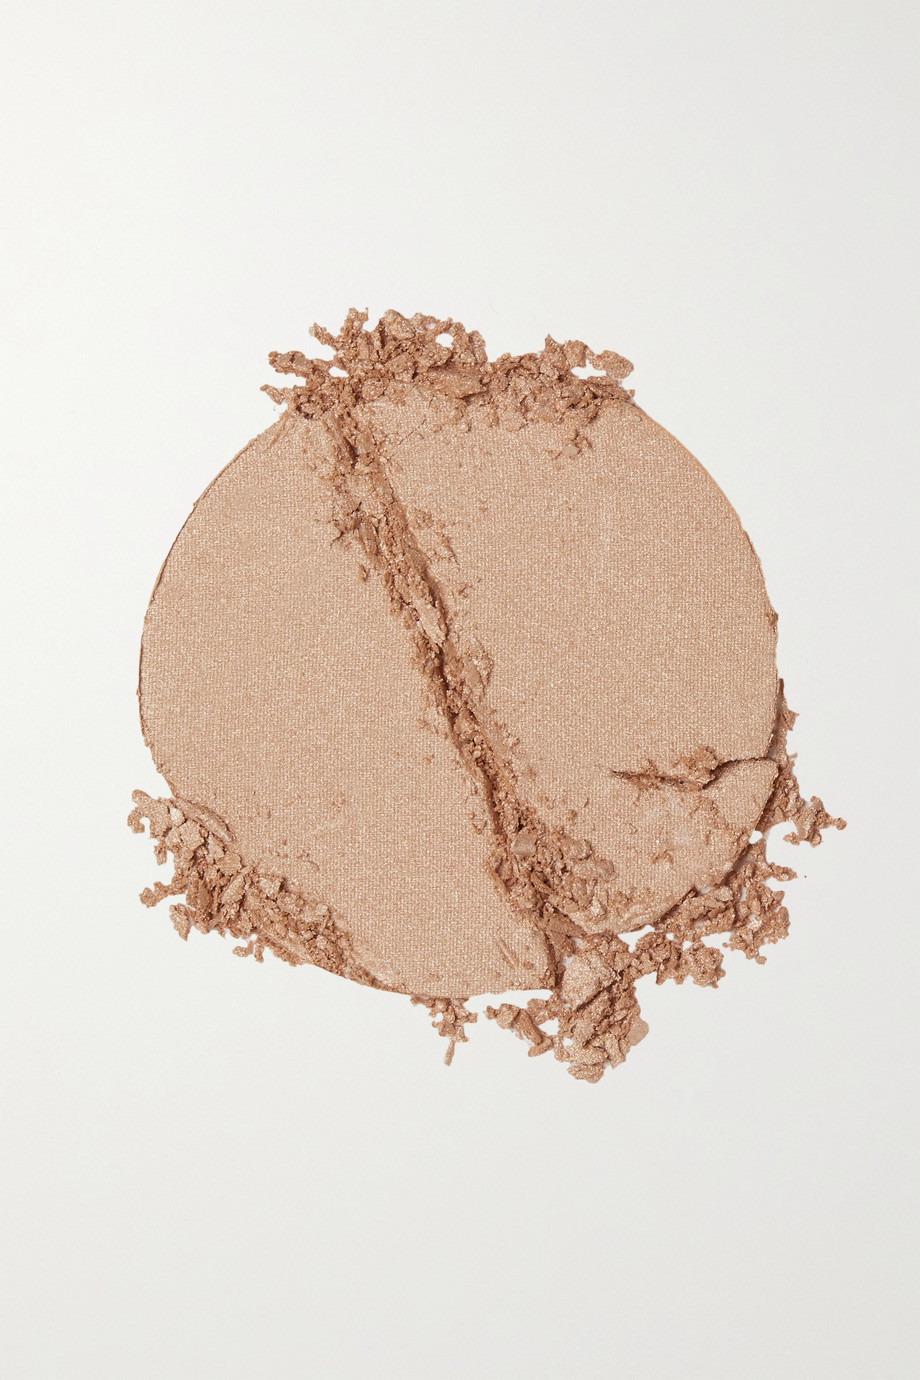 Ilia DayLite Highlighting Powder - Decades